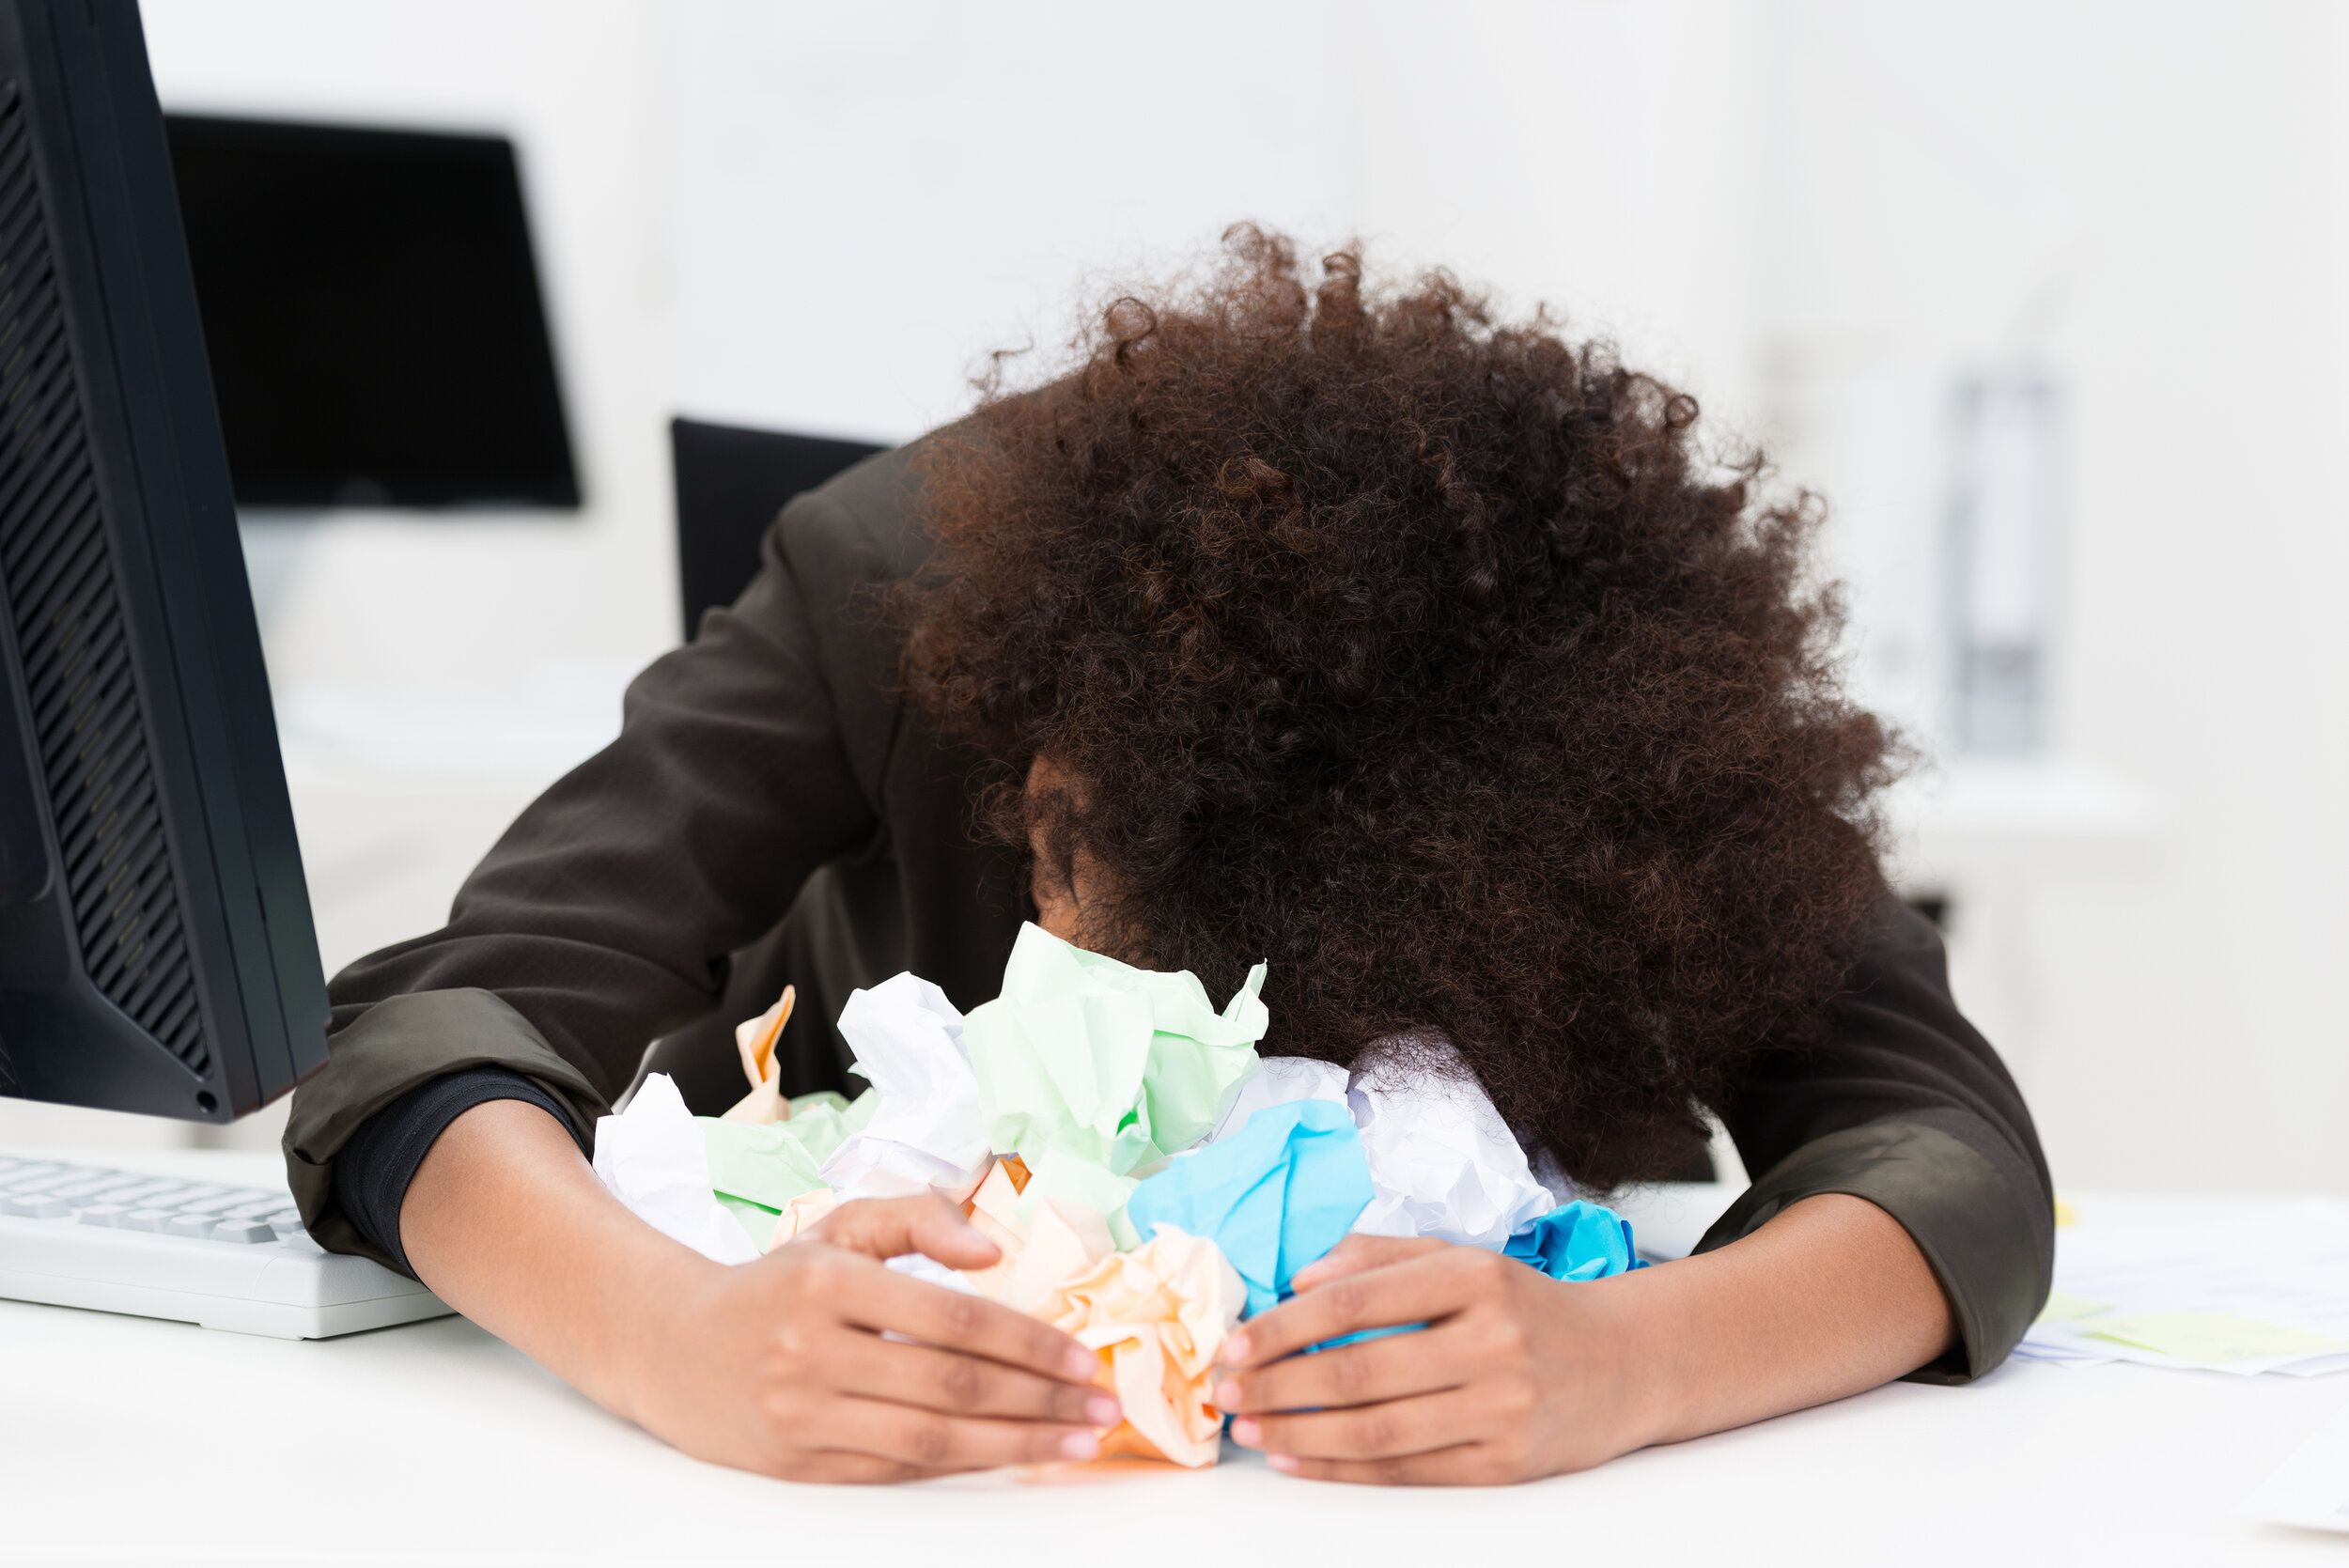 Distraught writer has her head resting on a pile of crumpled up paper.